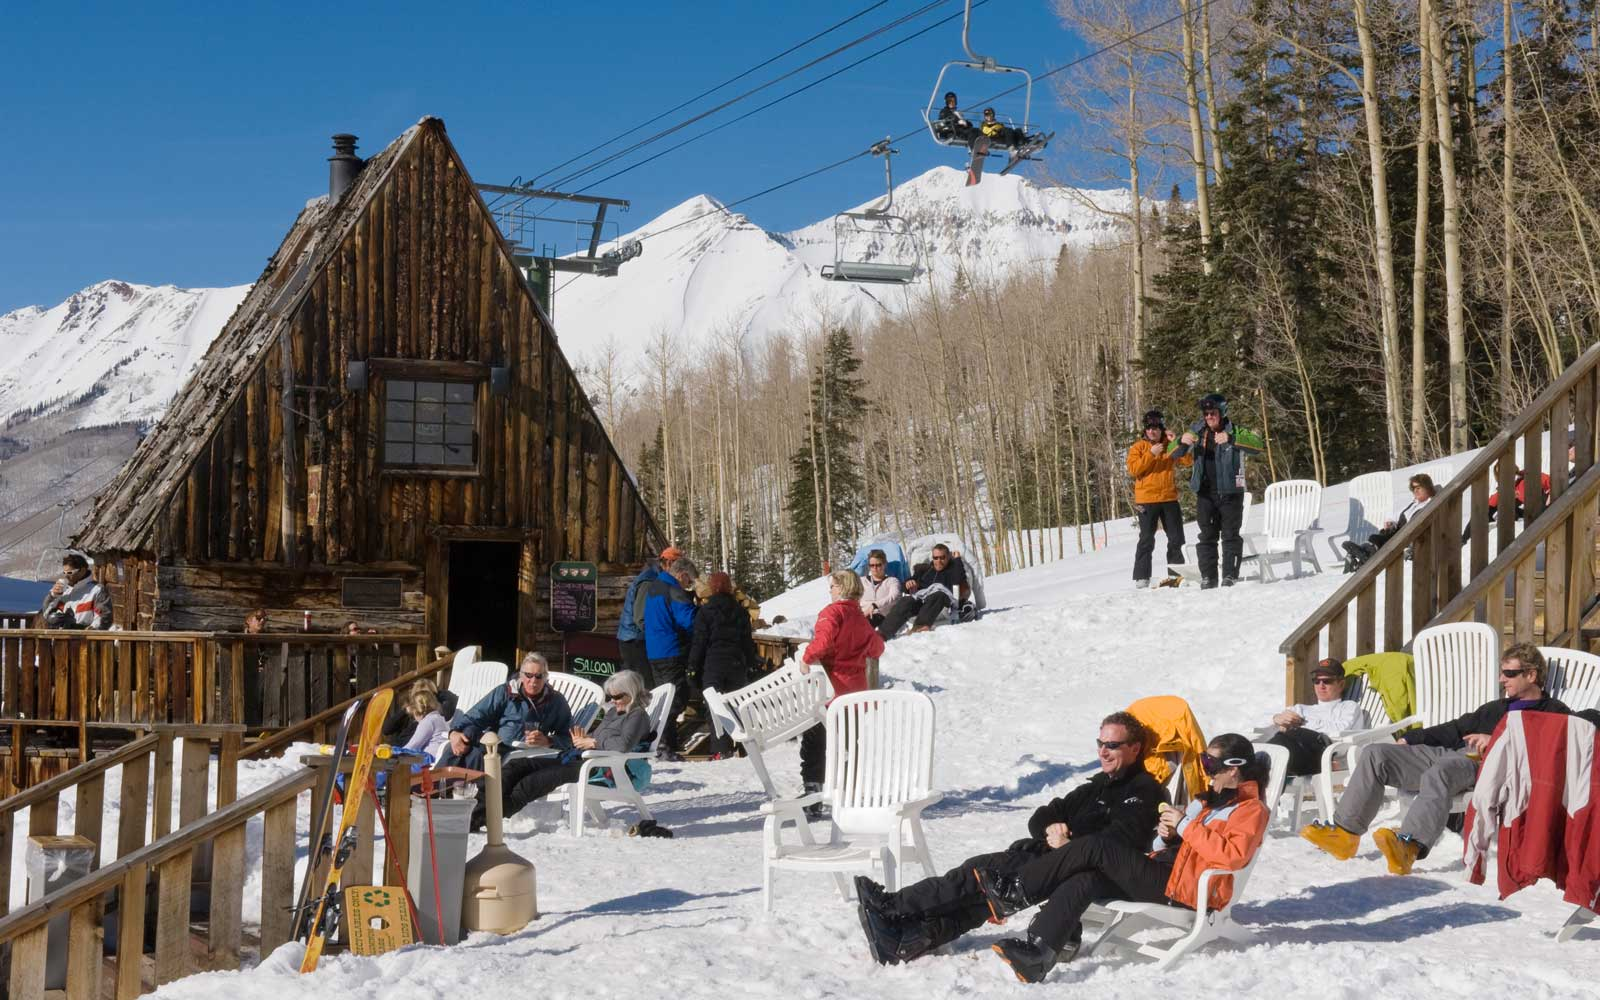 5 Colorado Ski Resorts that are not Aspen or Vail